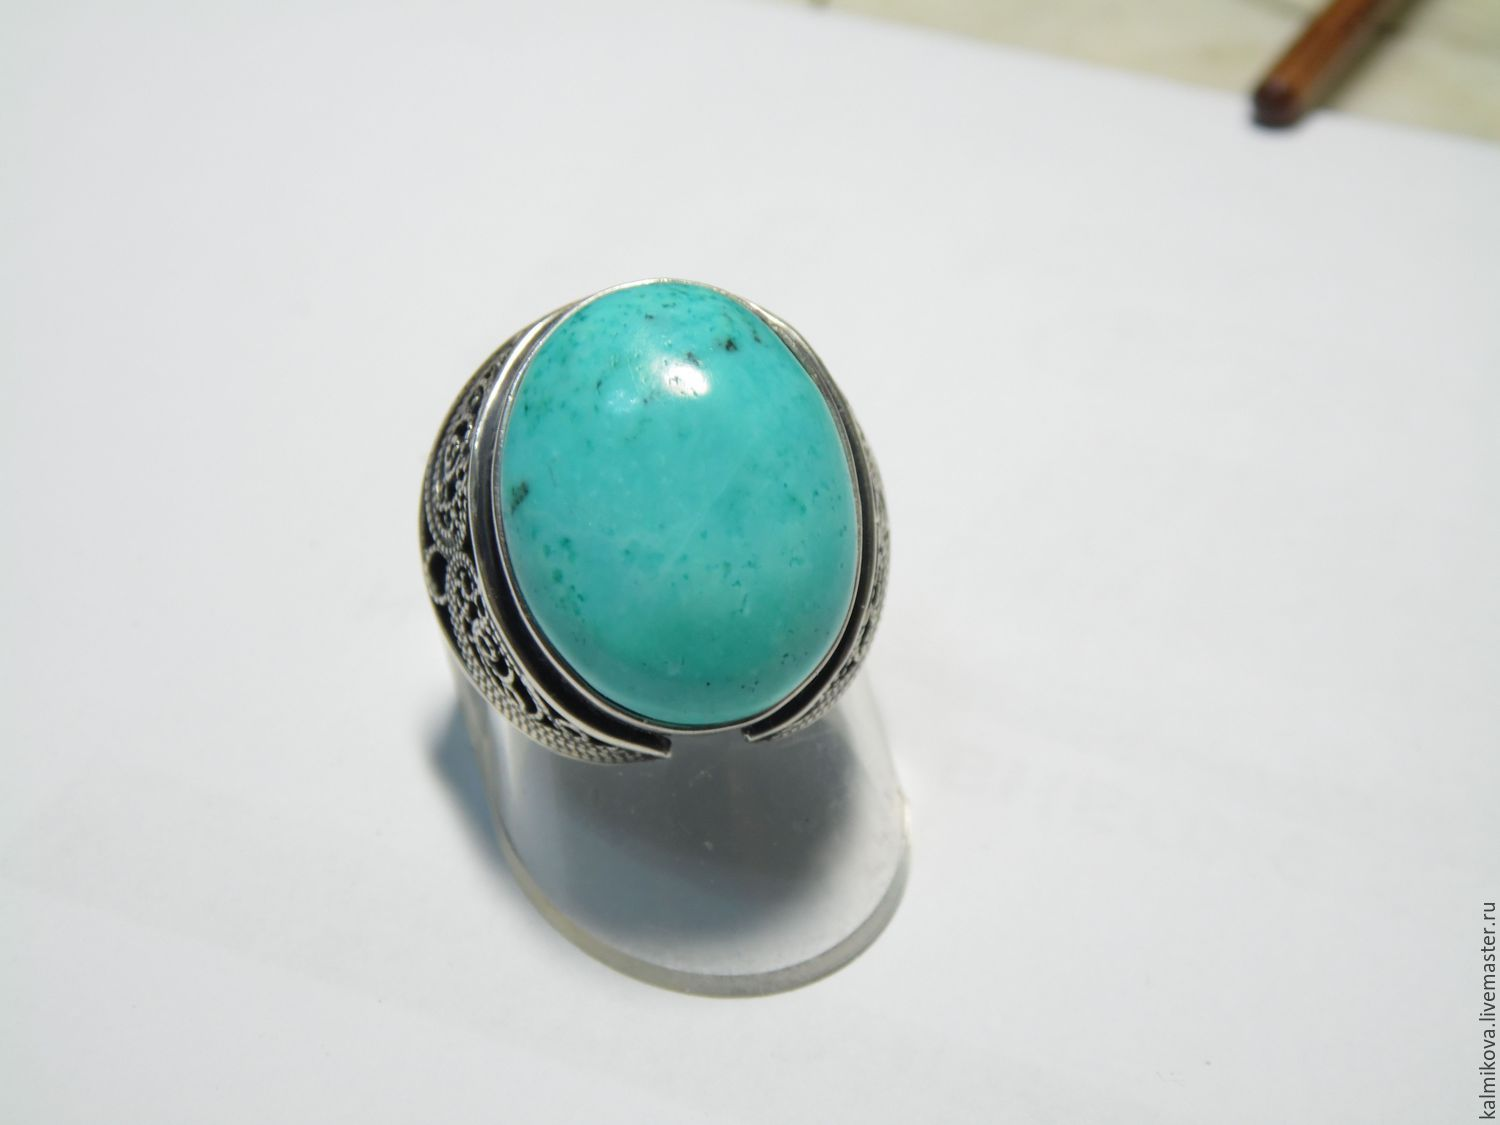 Ring size 19, the size of the stone is 20.5x16 mm. Weight of the ring 9,120 gr. The price of the ring 5016 rub.